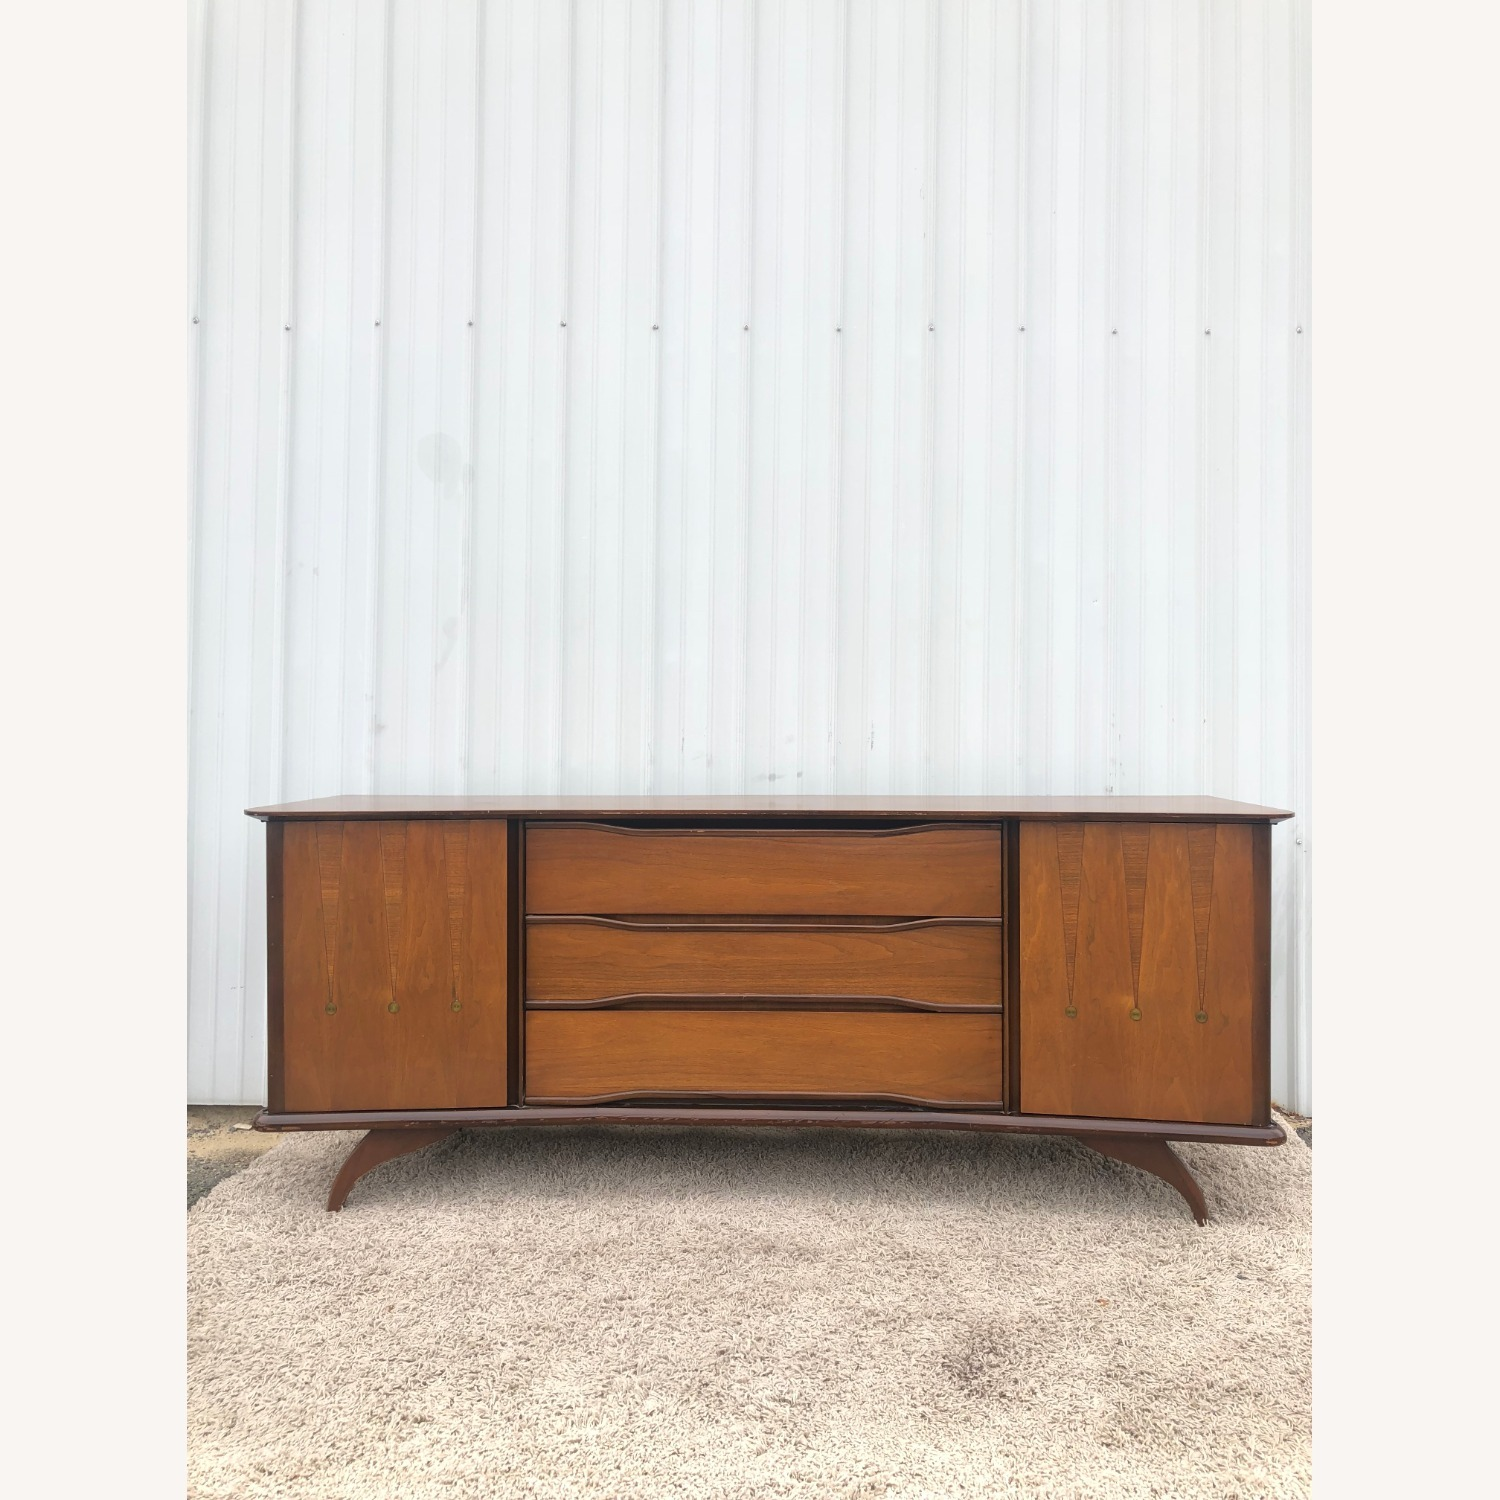 Mid Century Lowboy Dresser with Brasss Accents - image-2